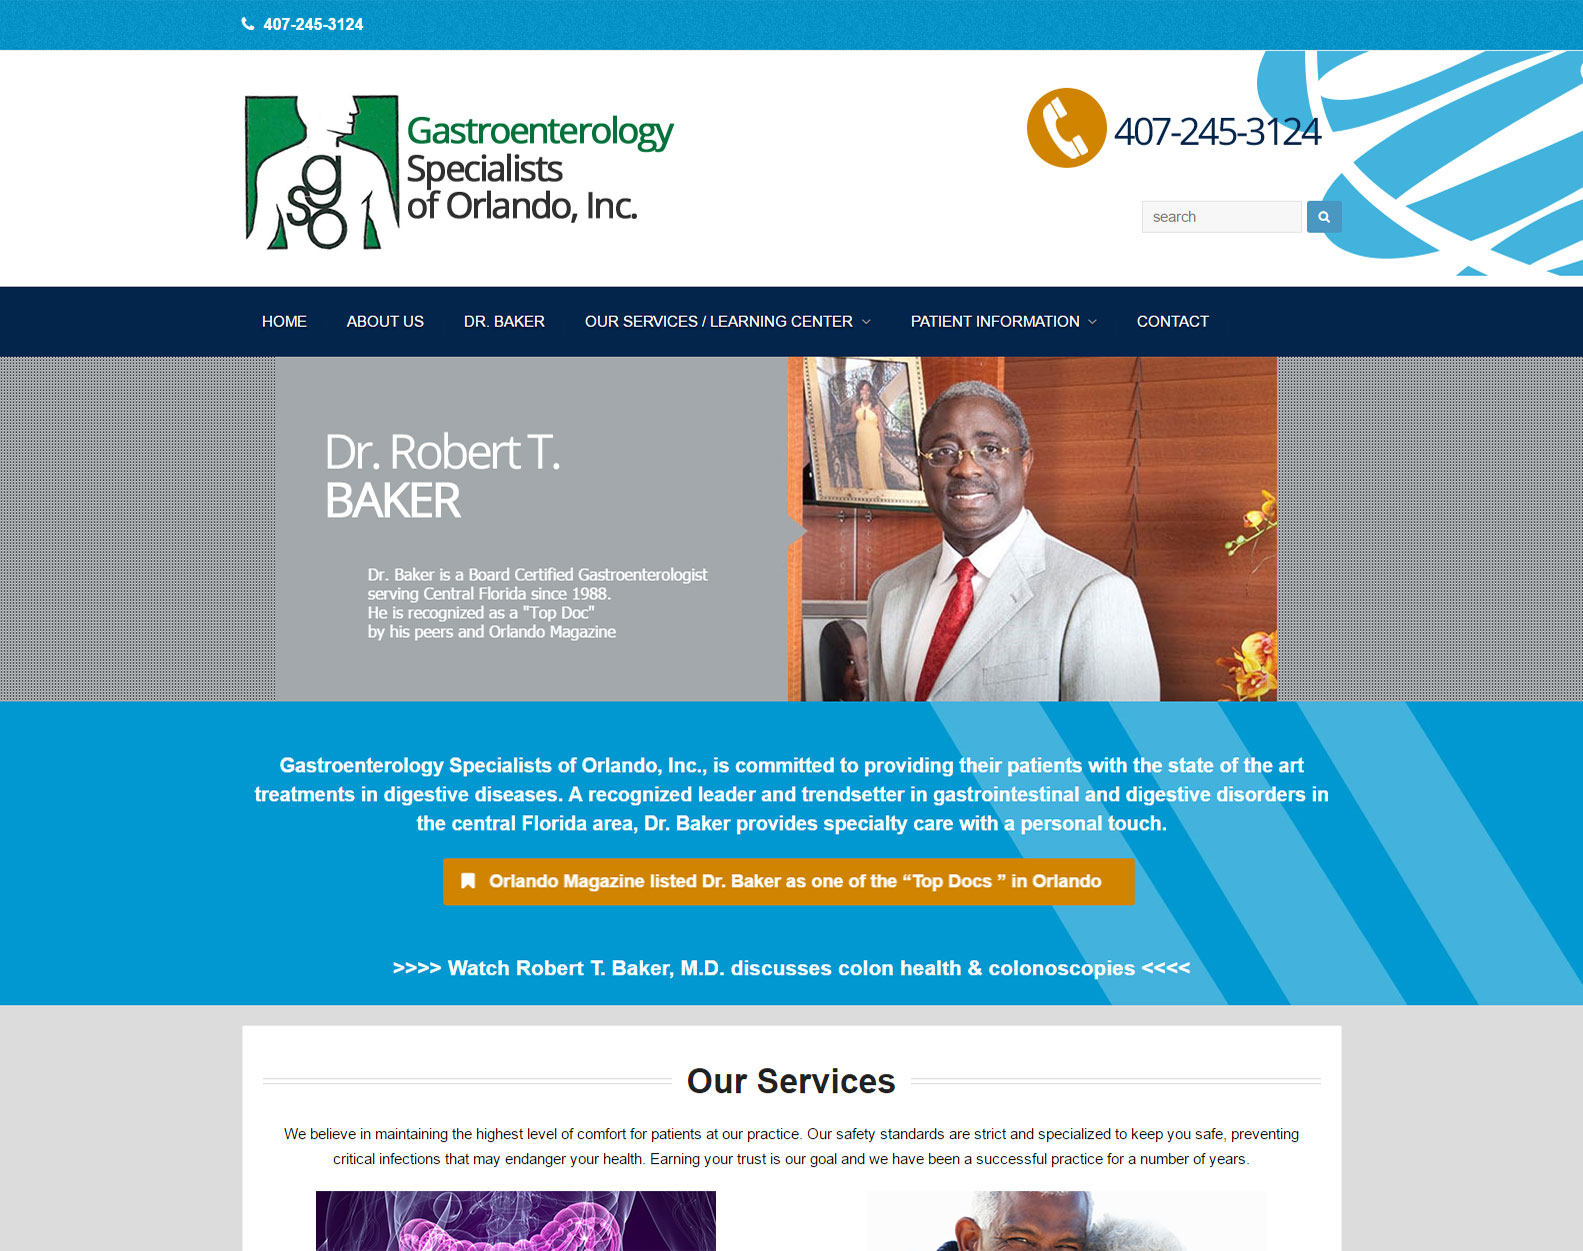 Gastroenterology Specialists of Orlando, Inc.